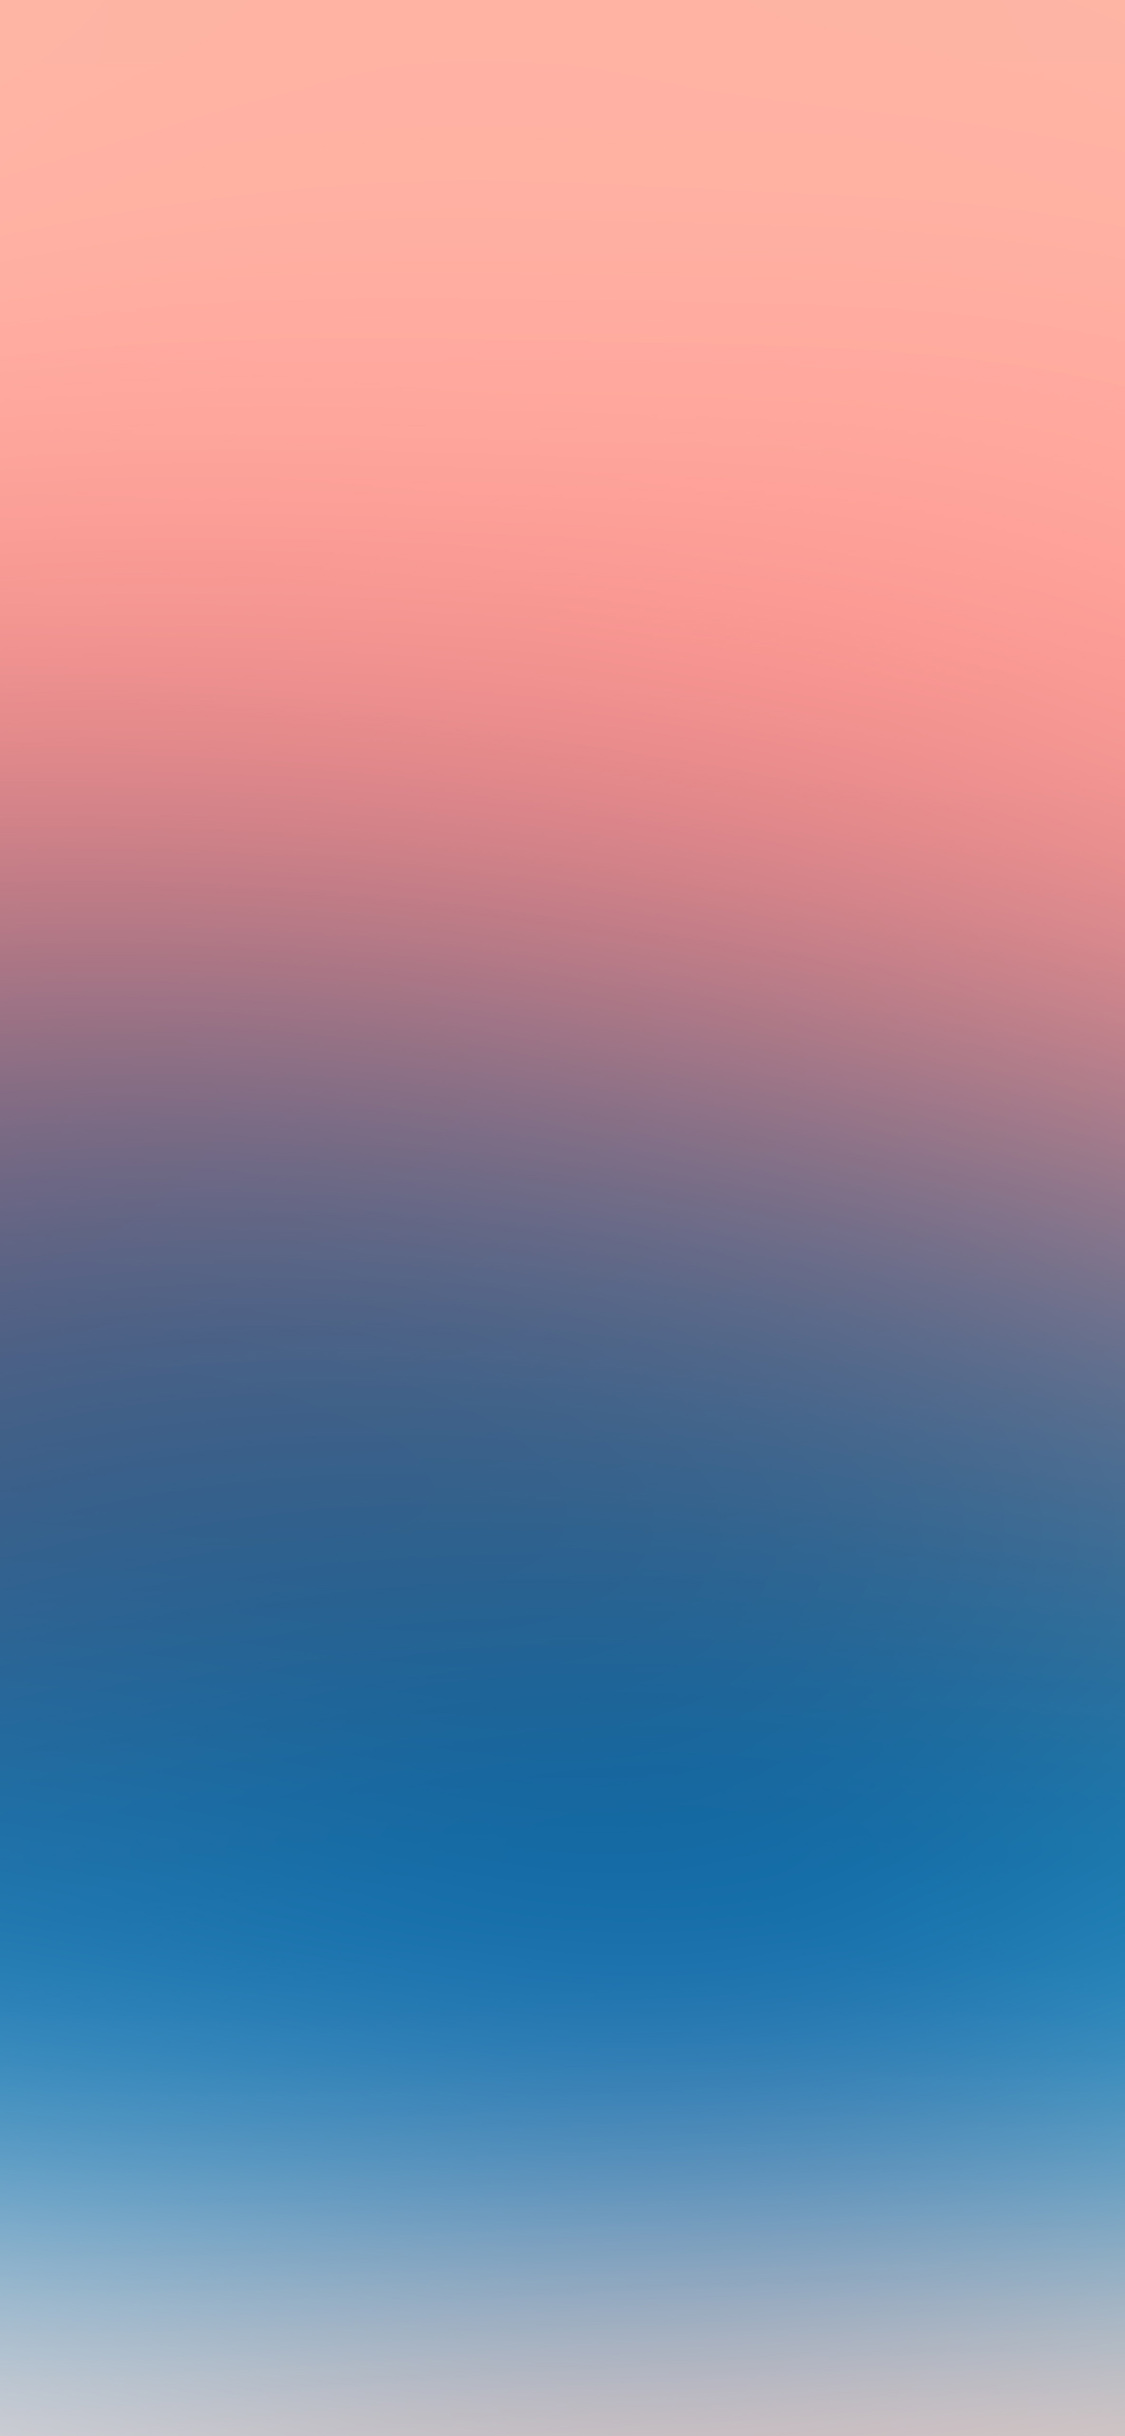 iPhoneXpapers.com-Apple-iPhone-wallpaper-si31-pink-blue-gradation-blur